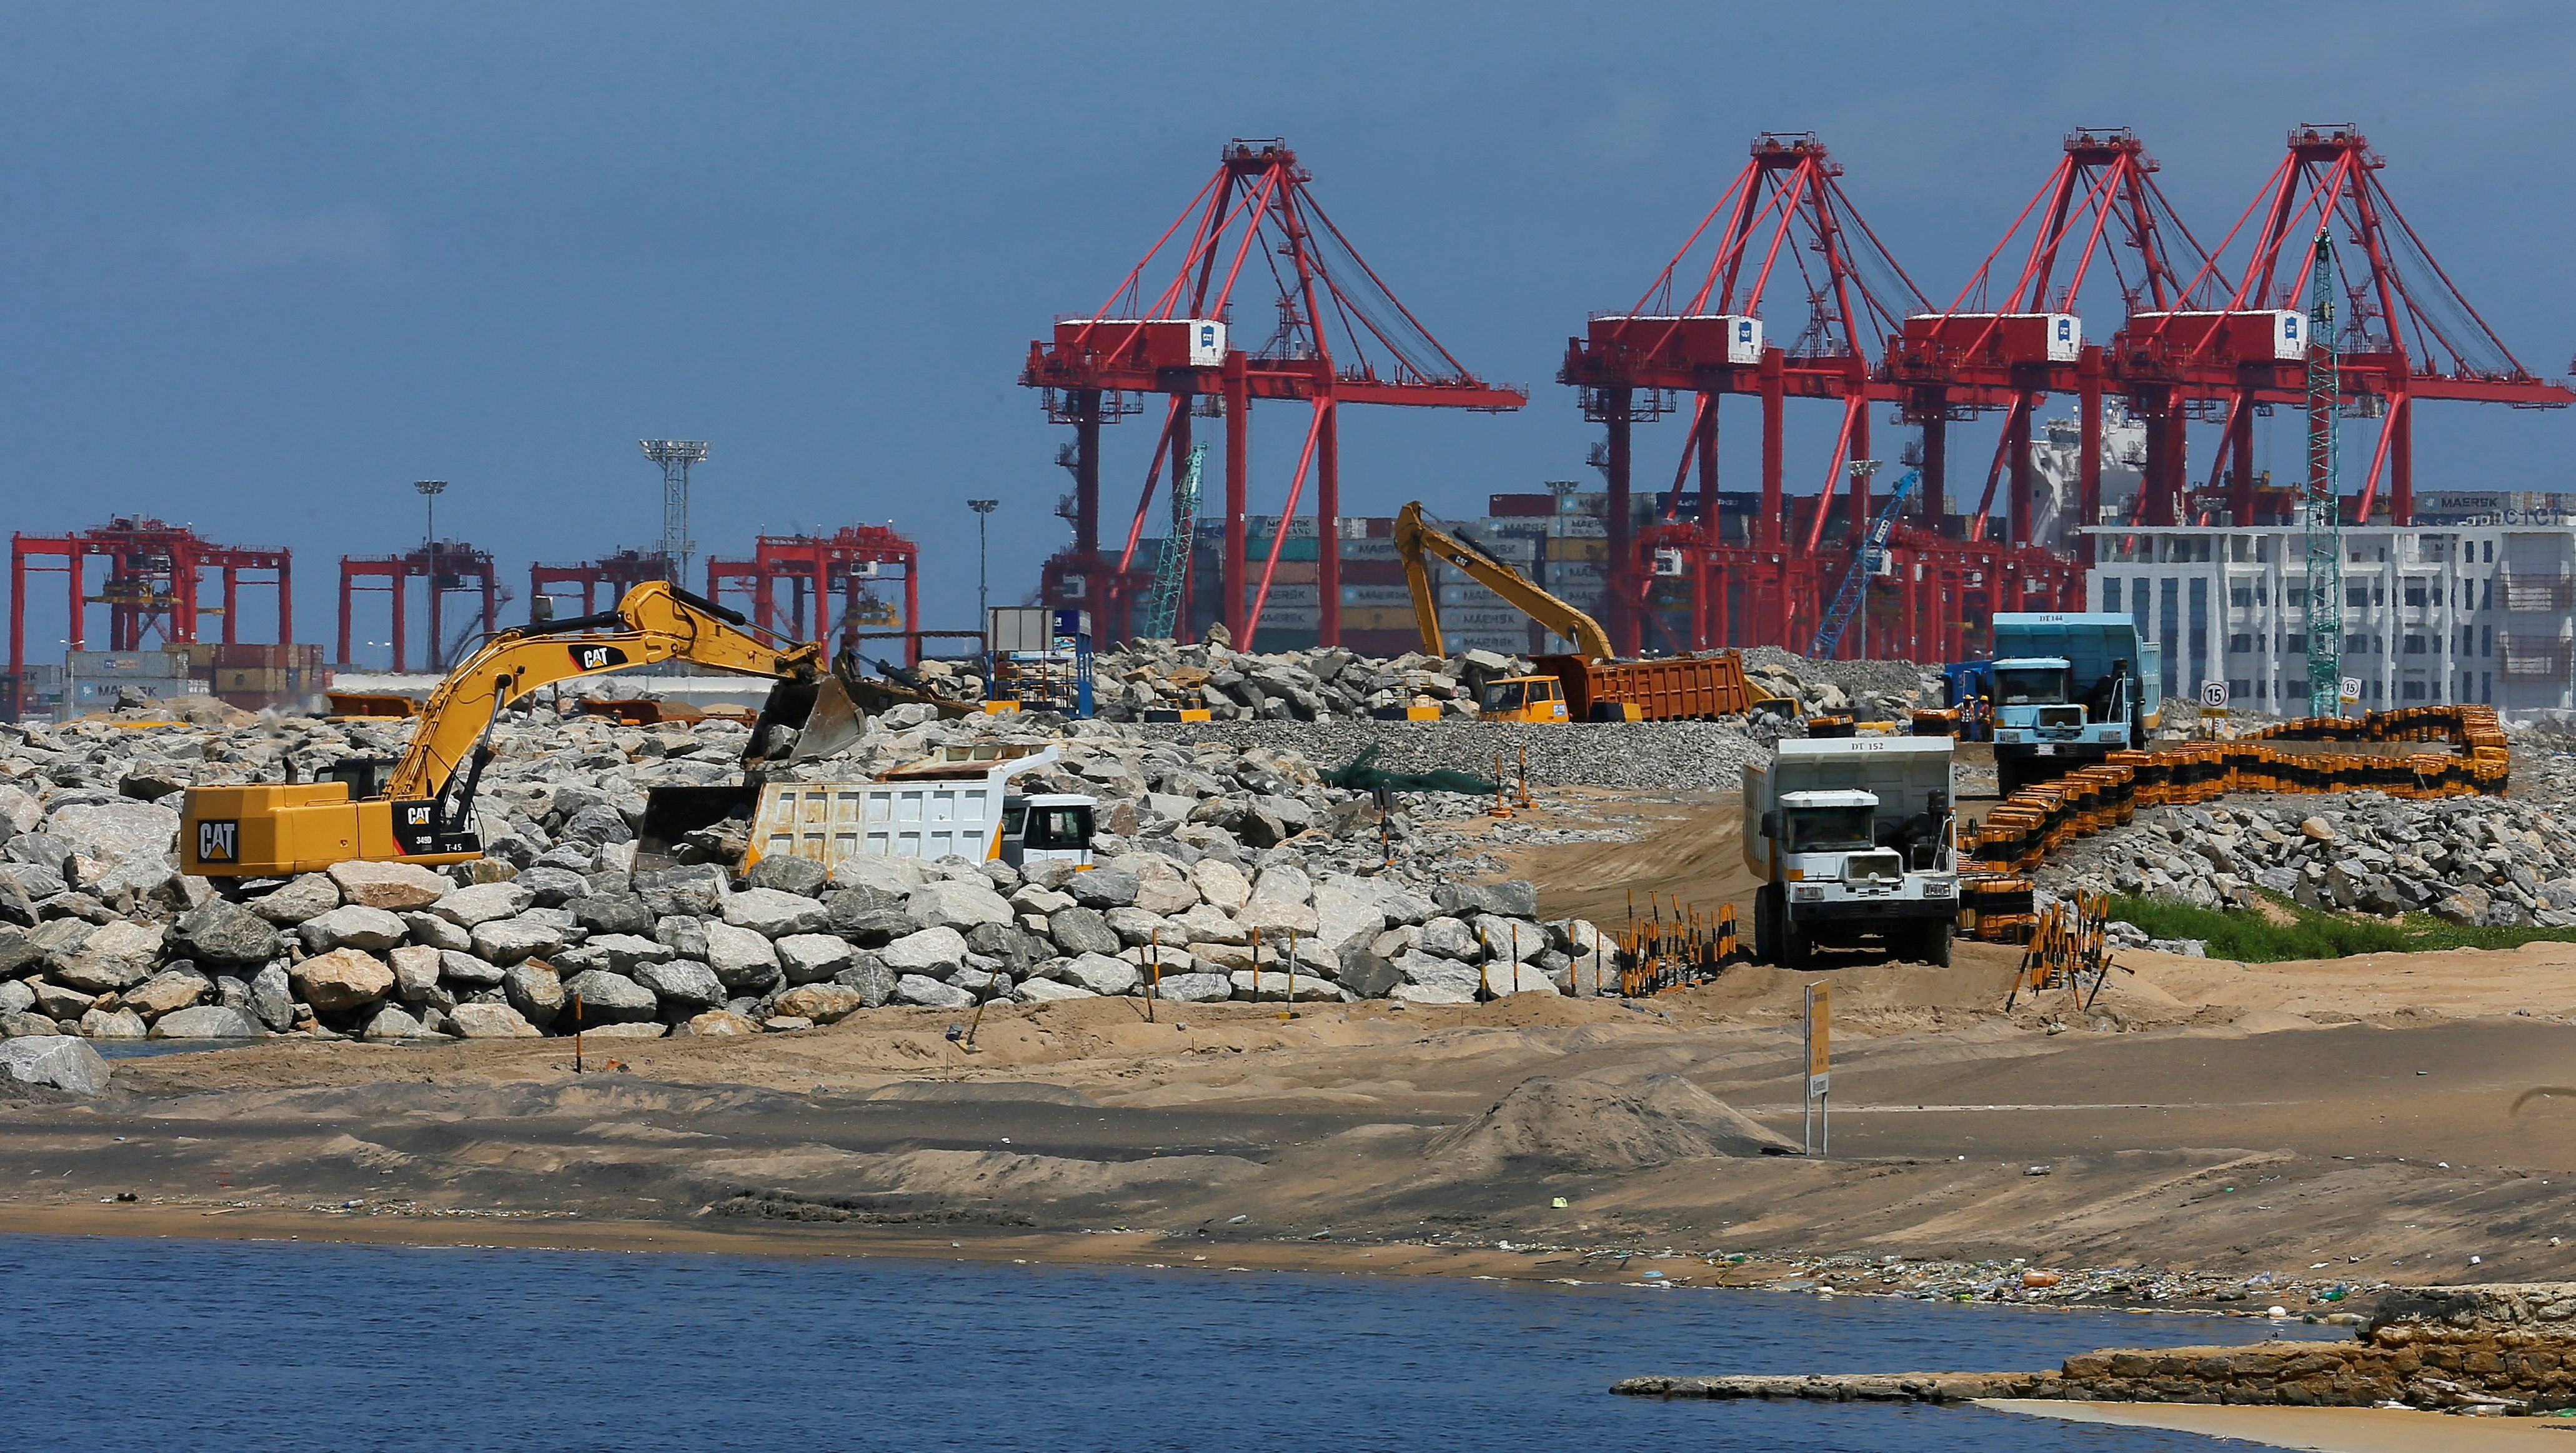 A general view of a Colombo Port City construction site is seen at the Colombo South Harbor in Sri Lanka October 4, 2016.